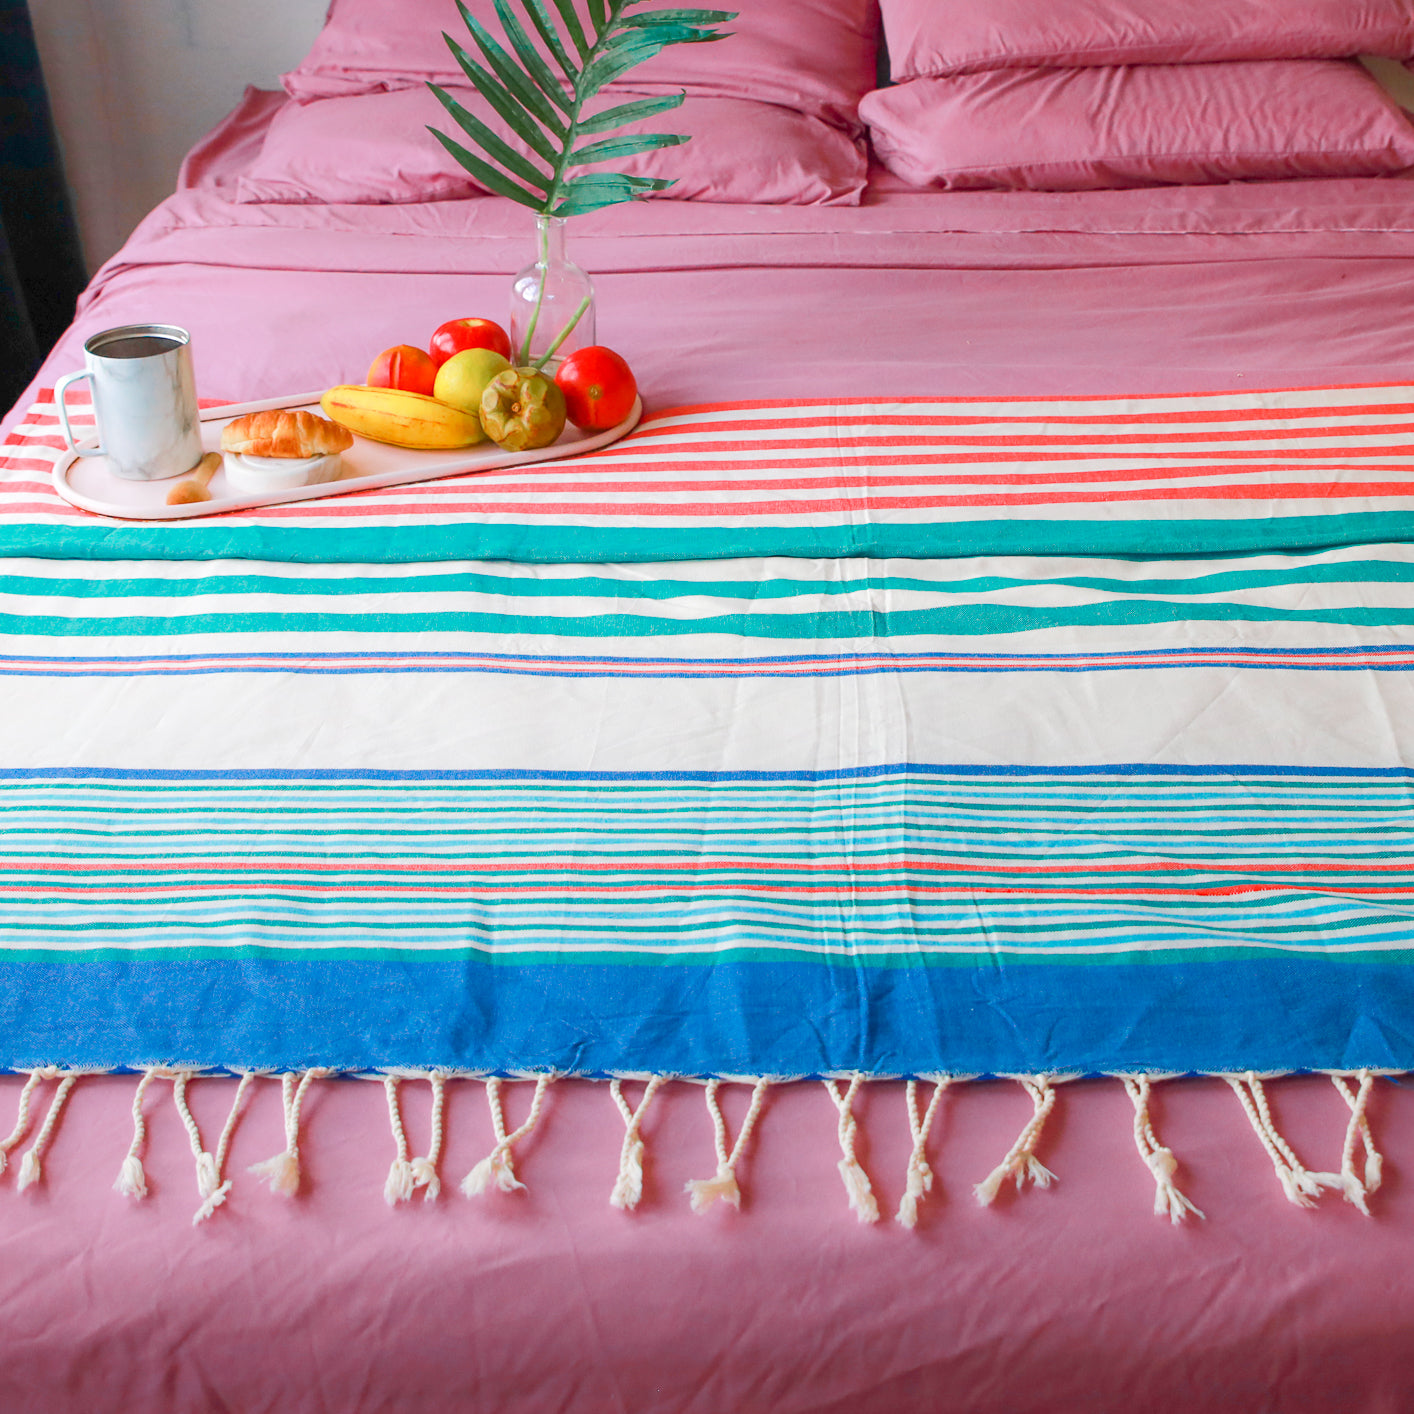 "Beach, Camping, Bed Sheet Blanket (Multicolor - W 56"" x L 96"")"